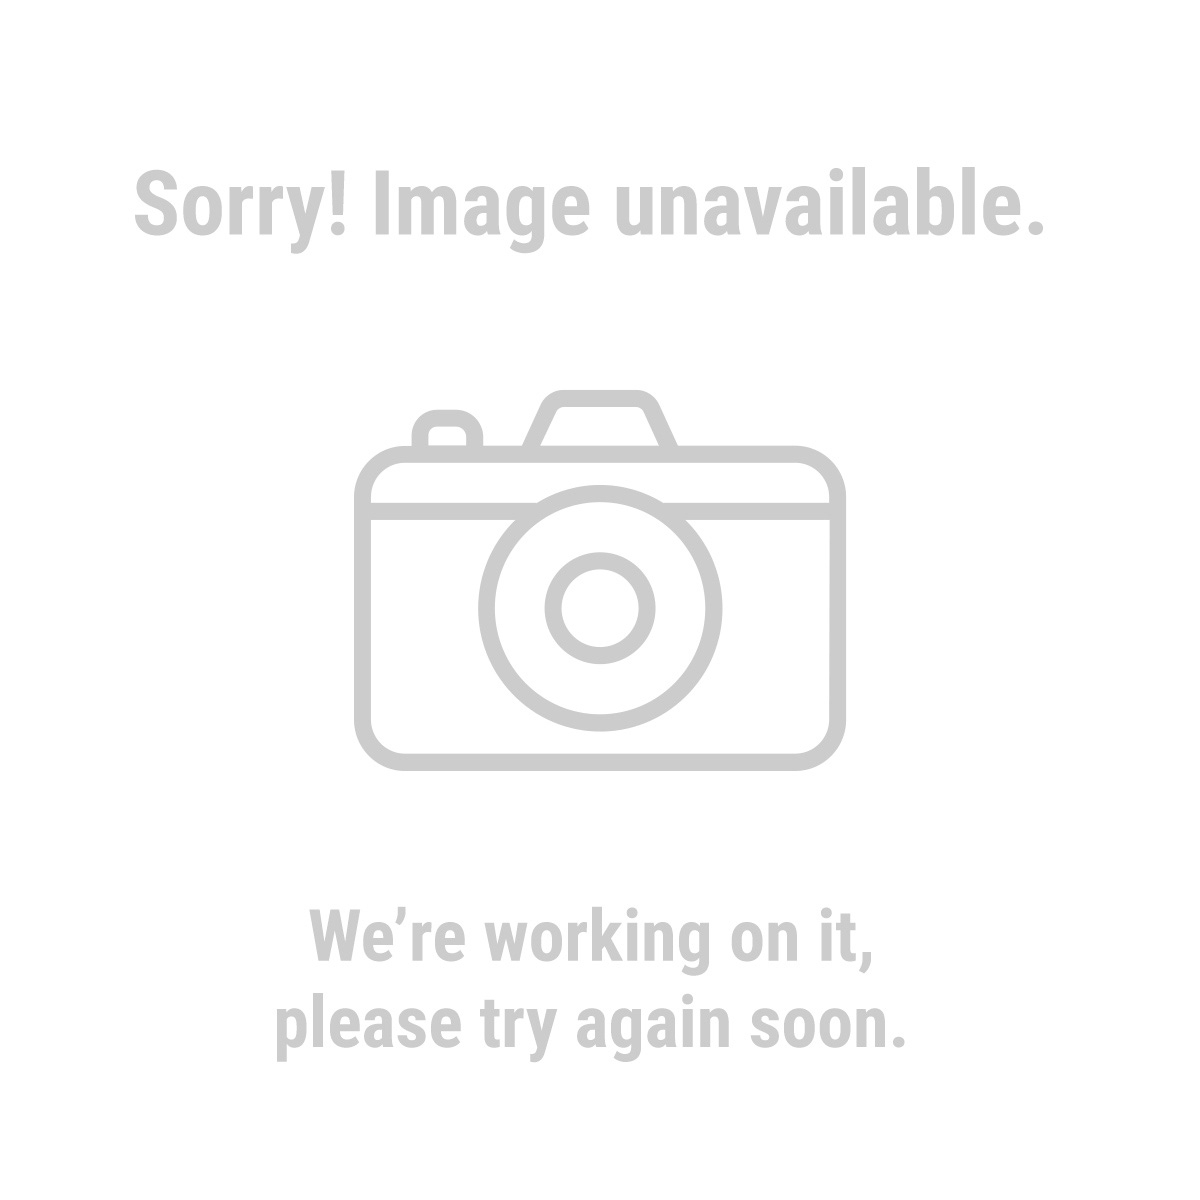 Warrior 61802 8 Piece M2 High Speed Steel Silver and Deming Drill Bit Set